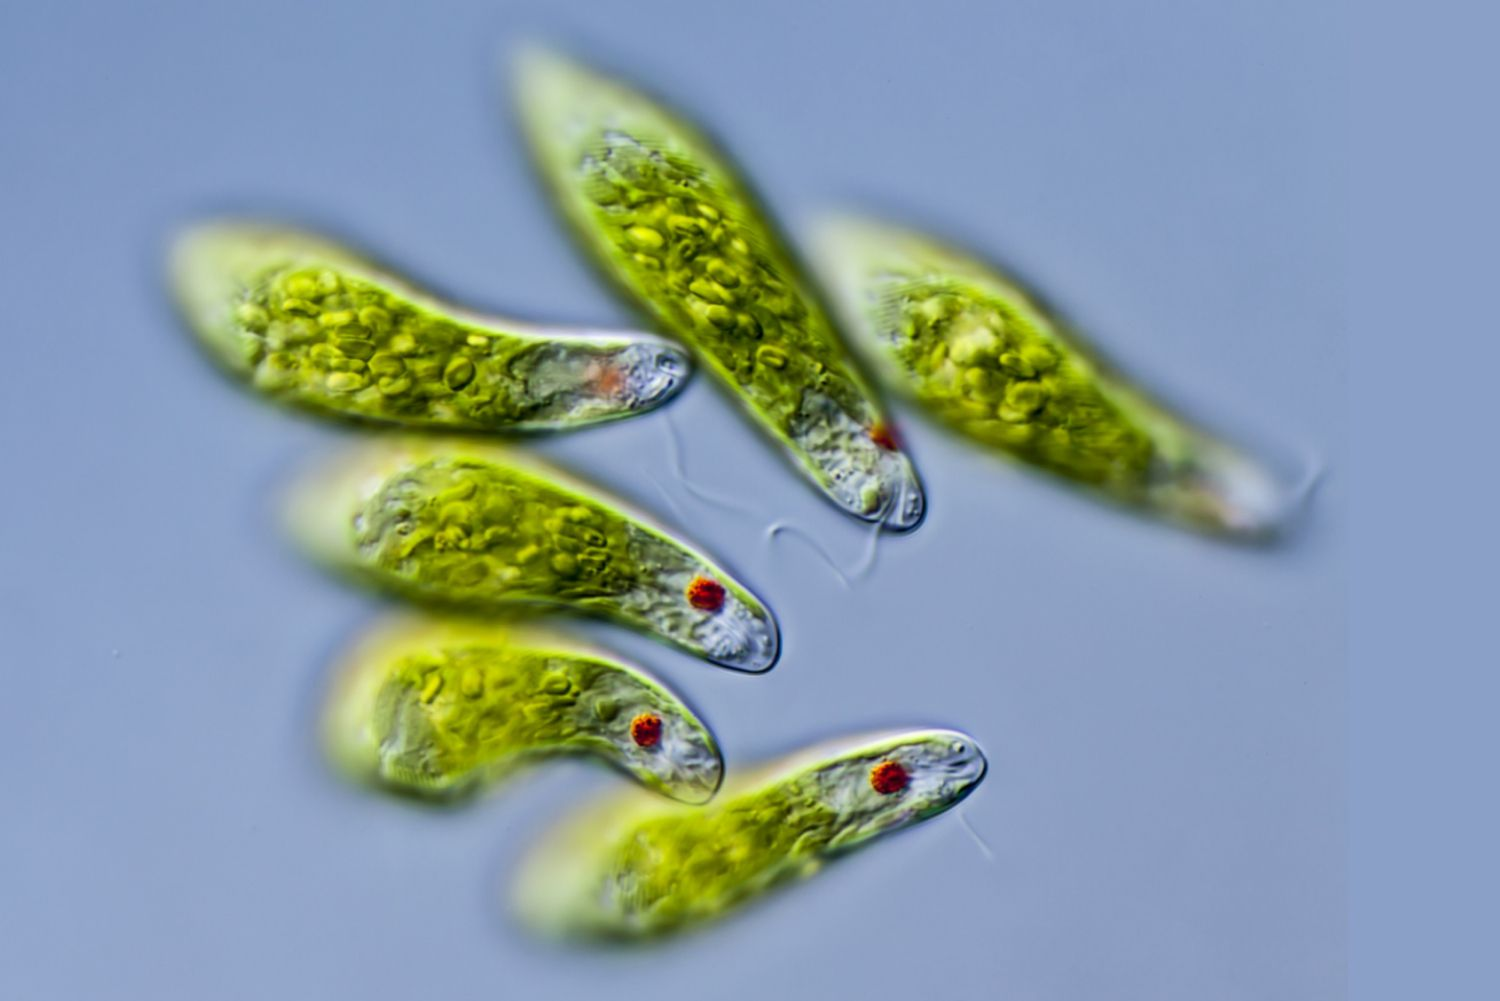 five euglena with red eyespots